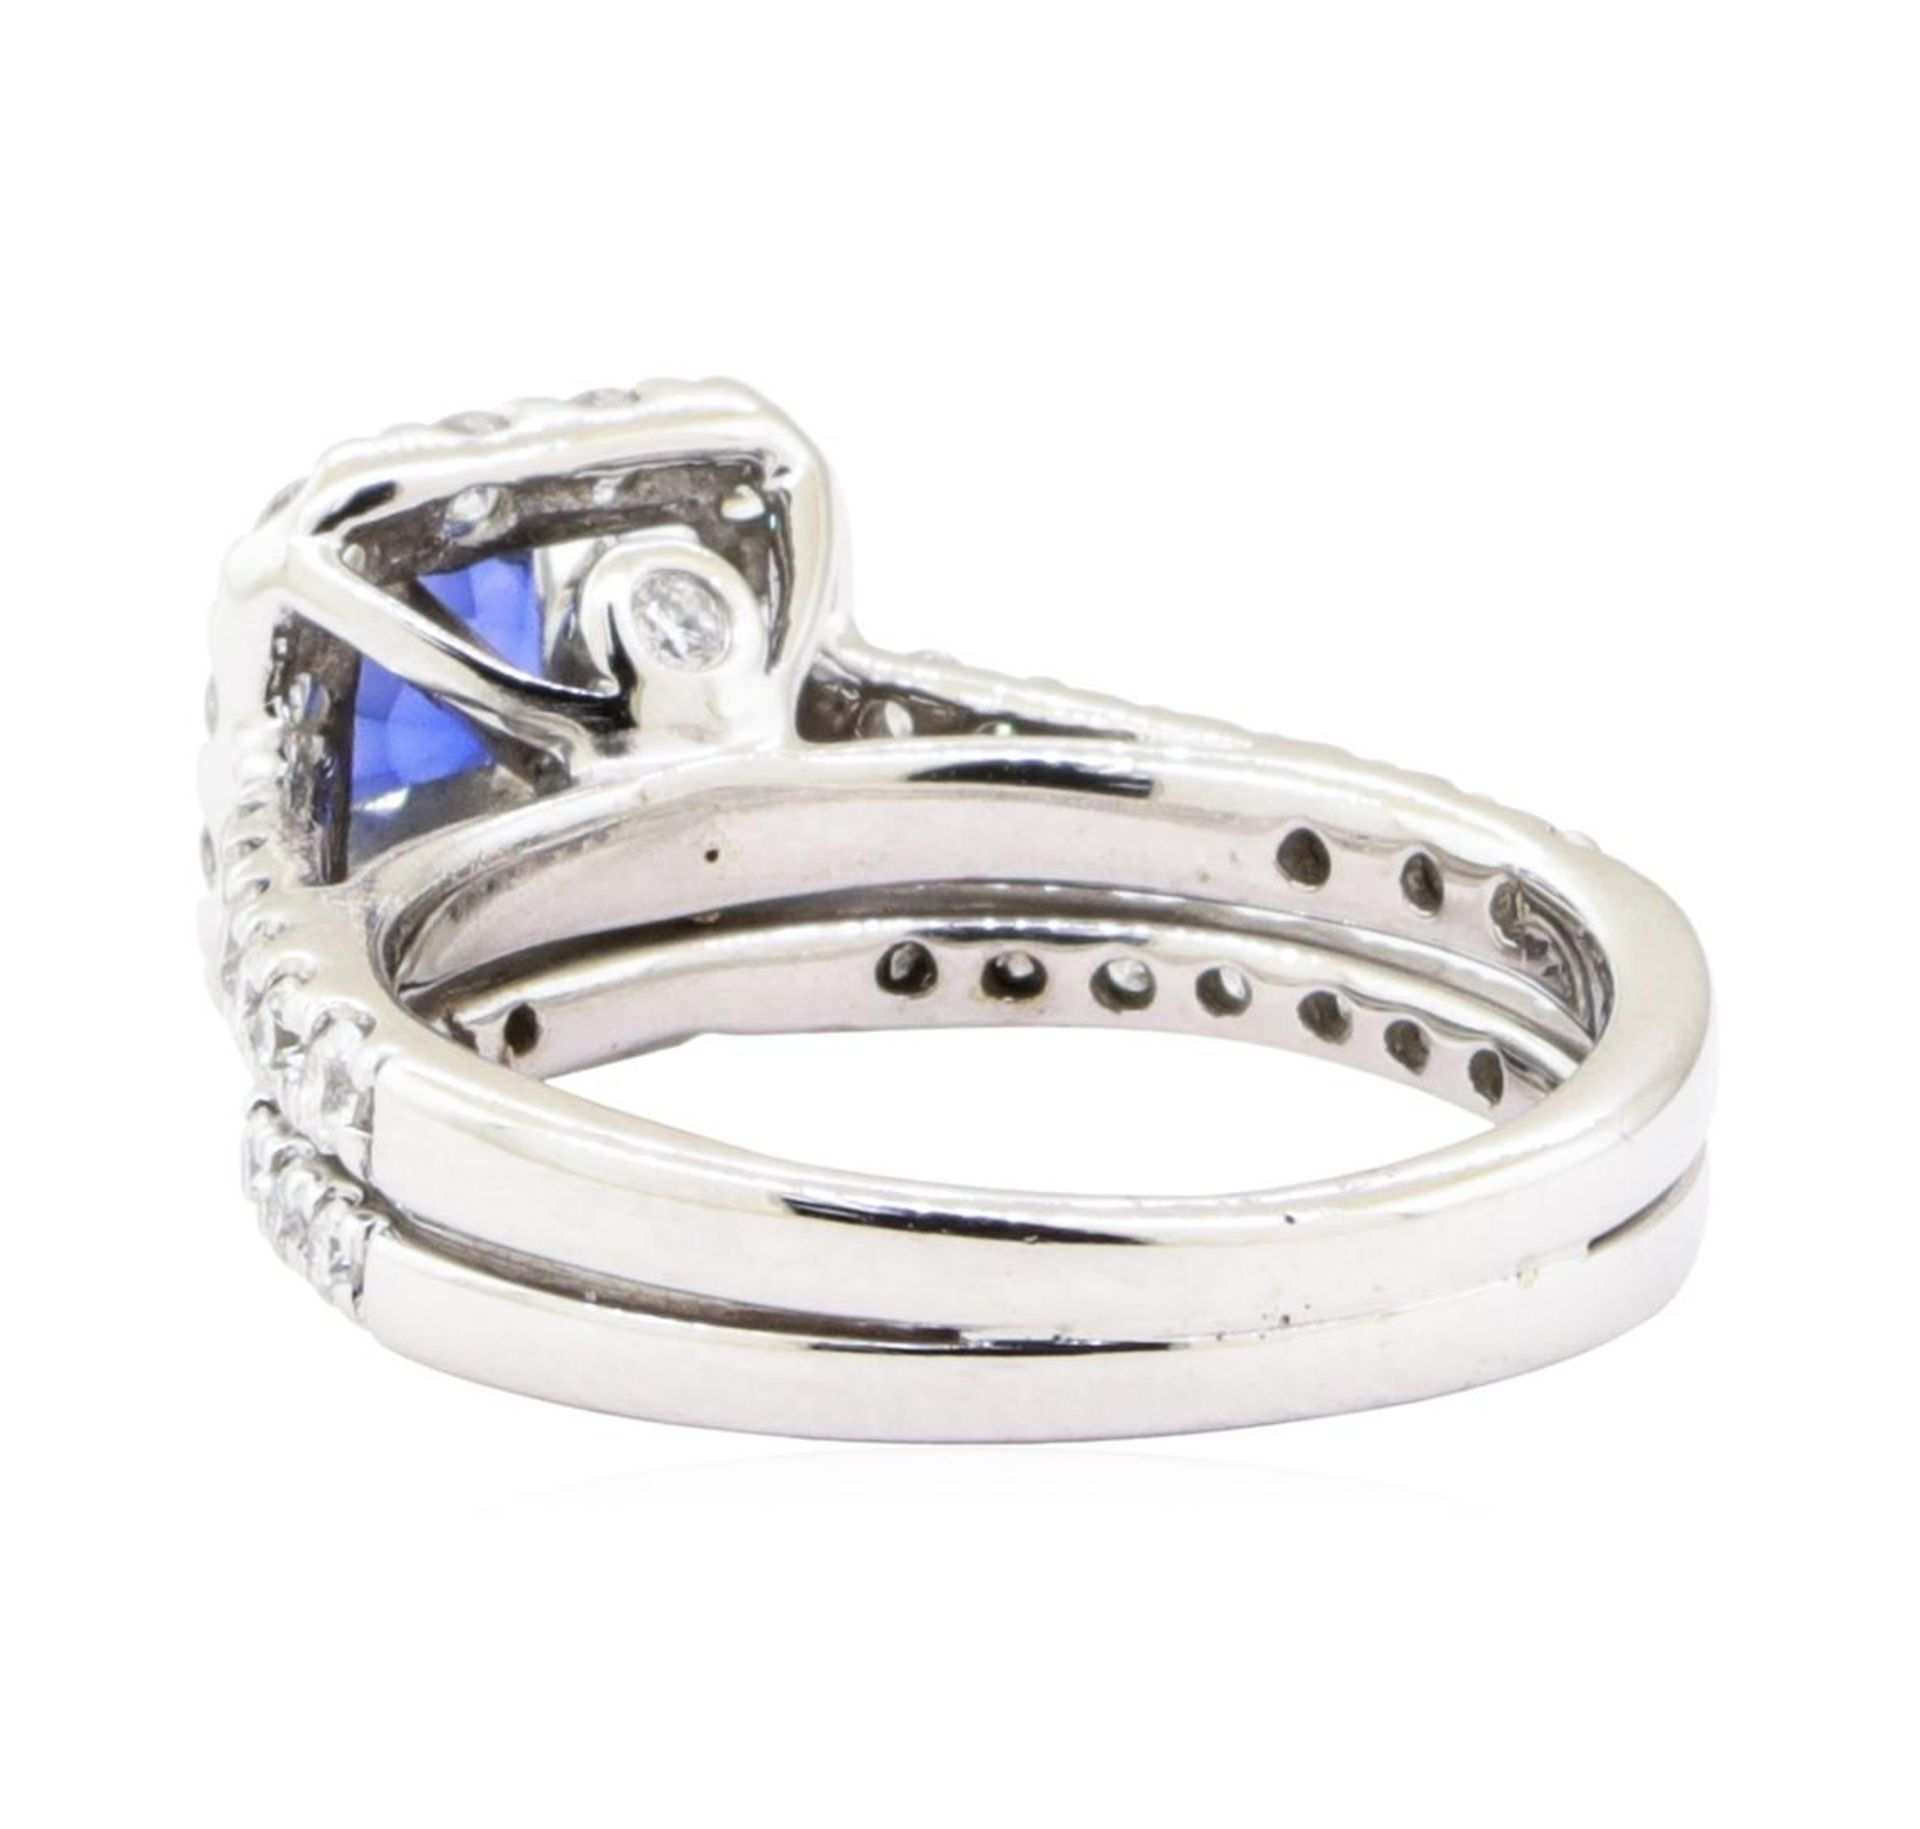 1.66 ctw Sapphire And Diamond Ring And Attached Band - 14KT White Gold - Image 3 of 5